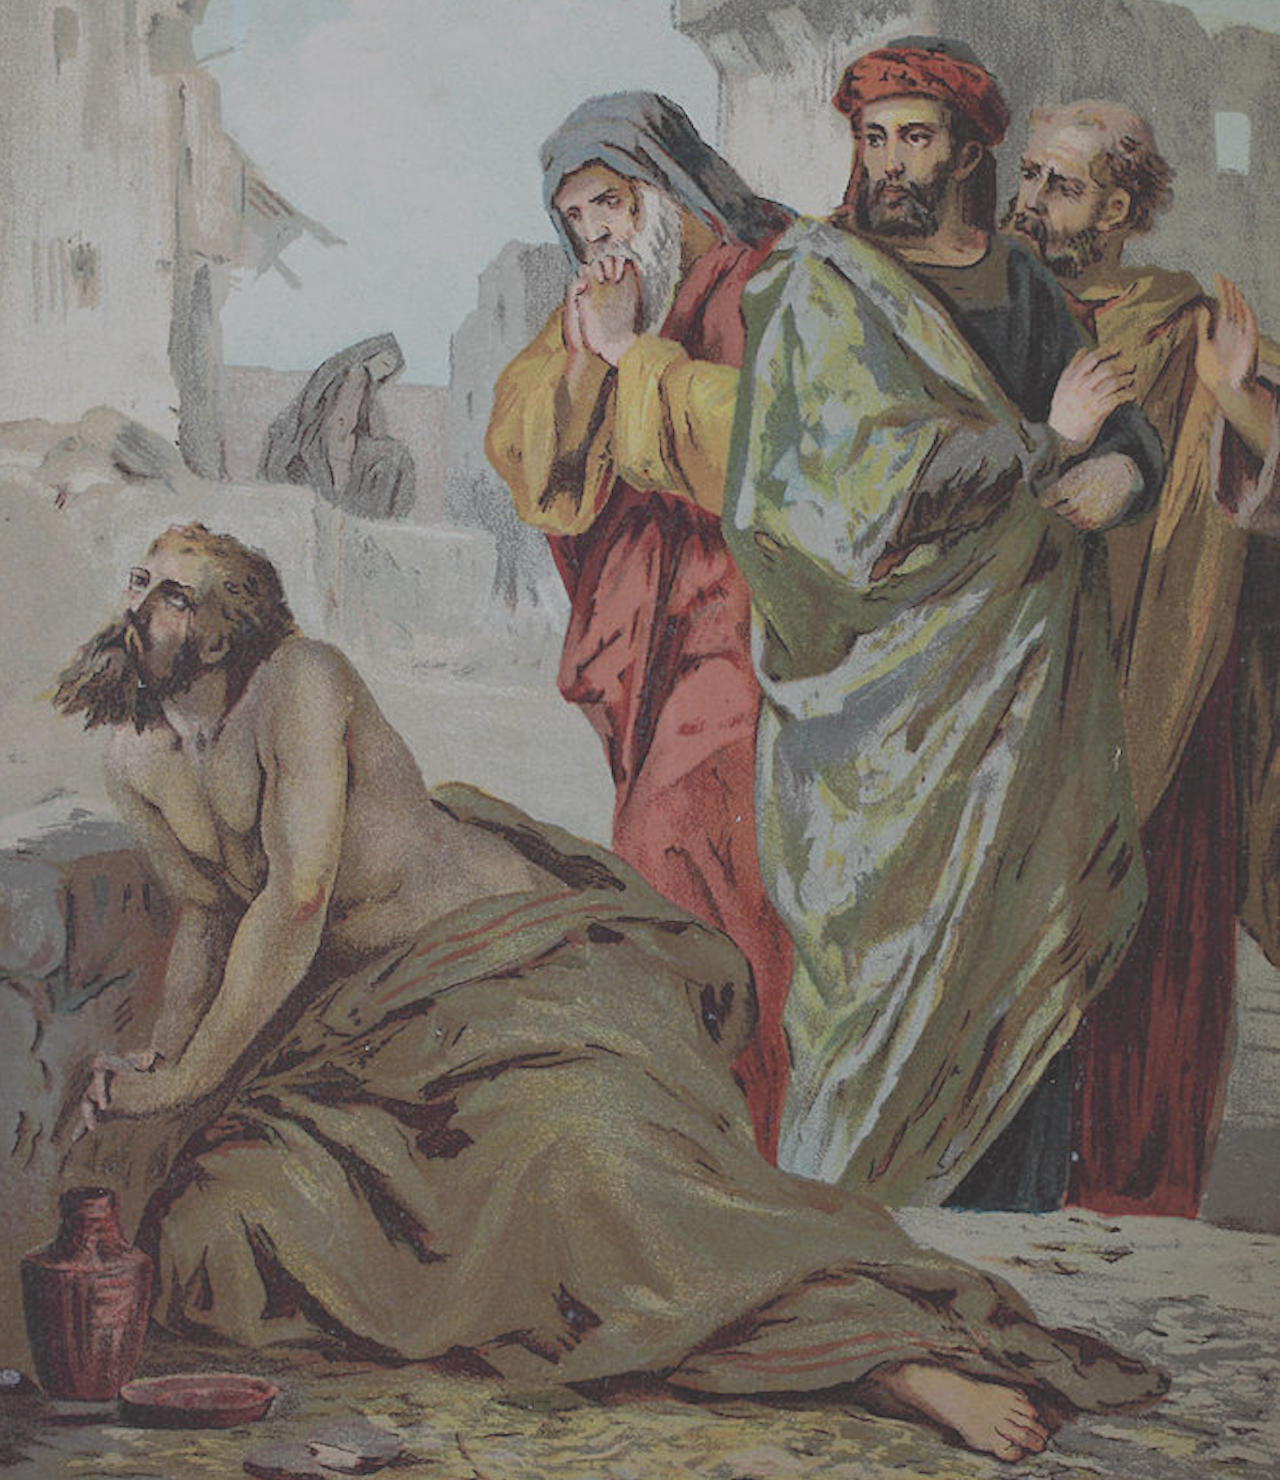 Job and his friends, 1870 (Drawing by Heinz)